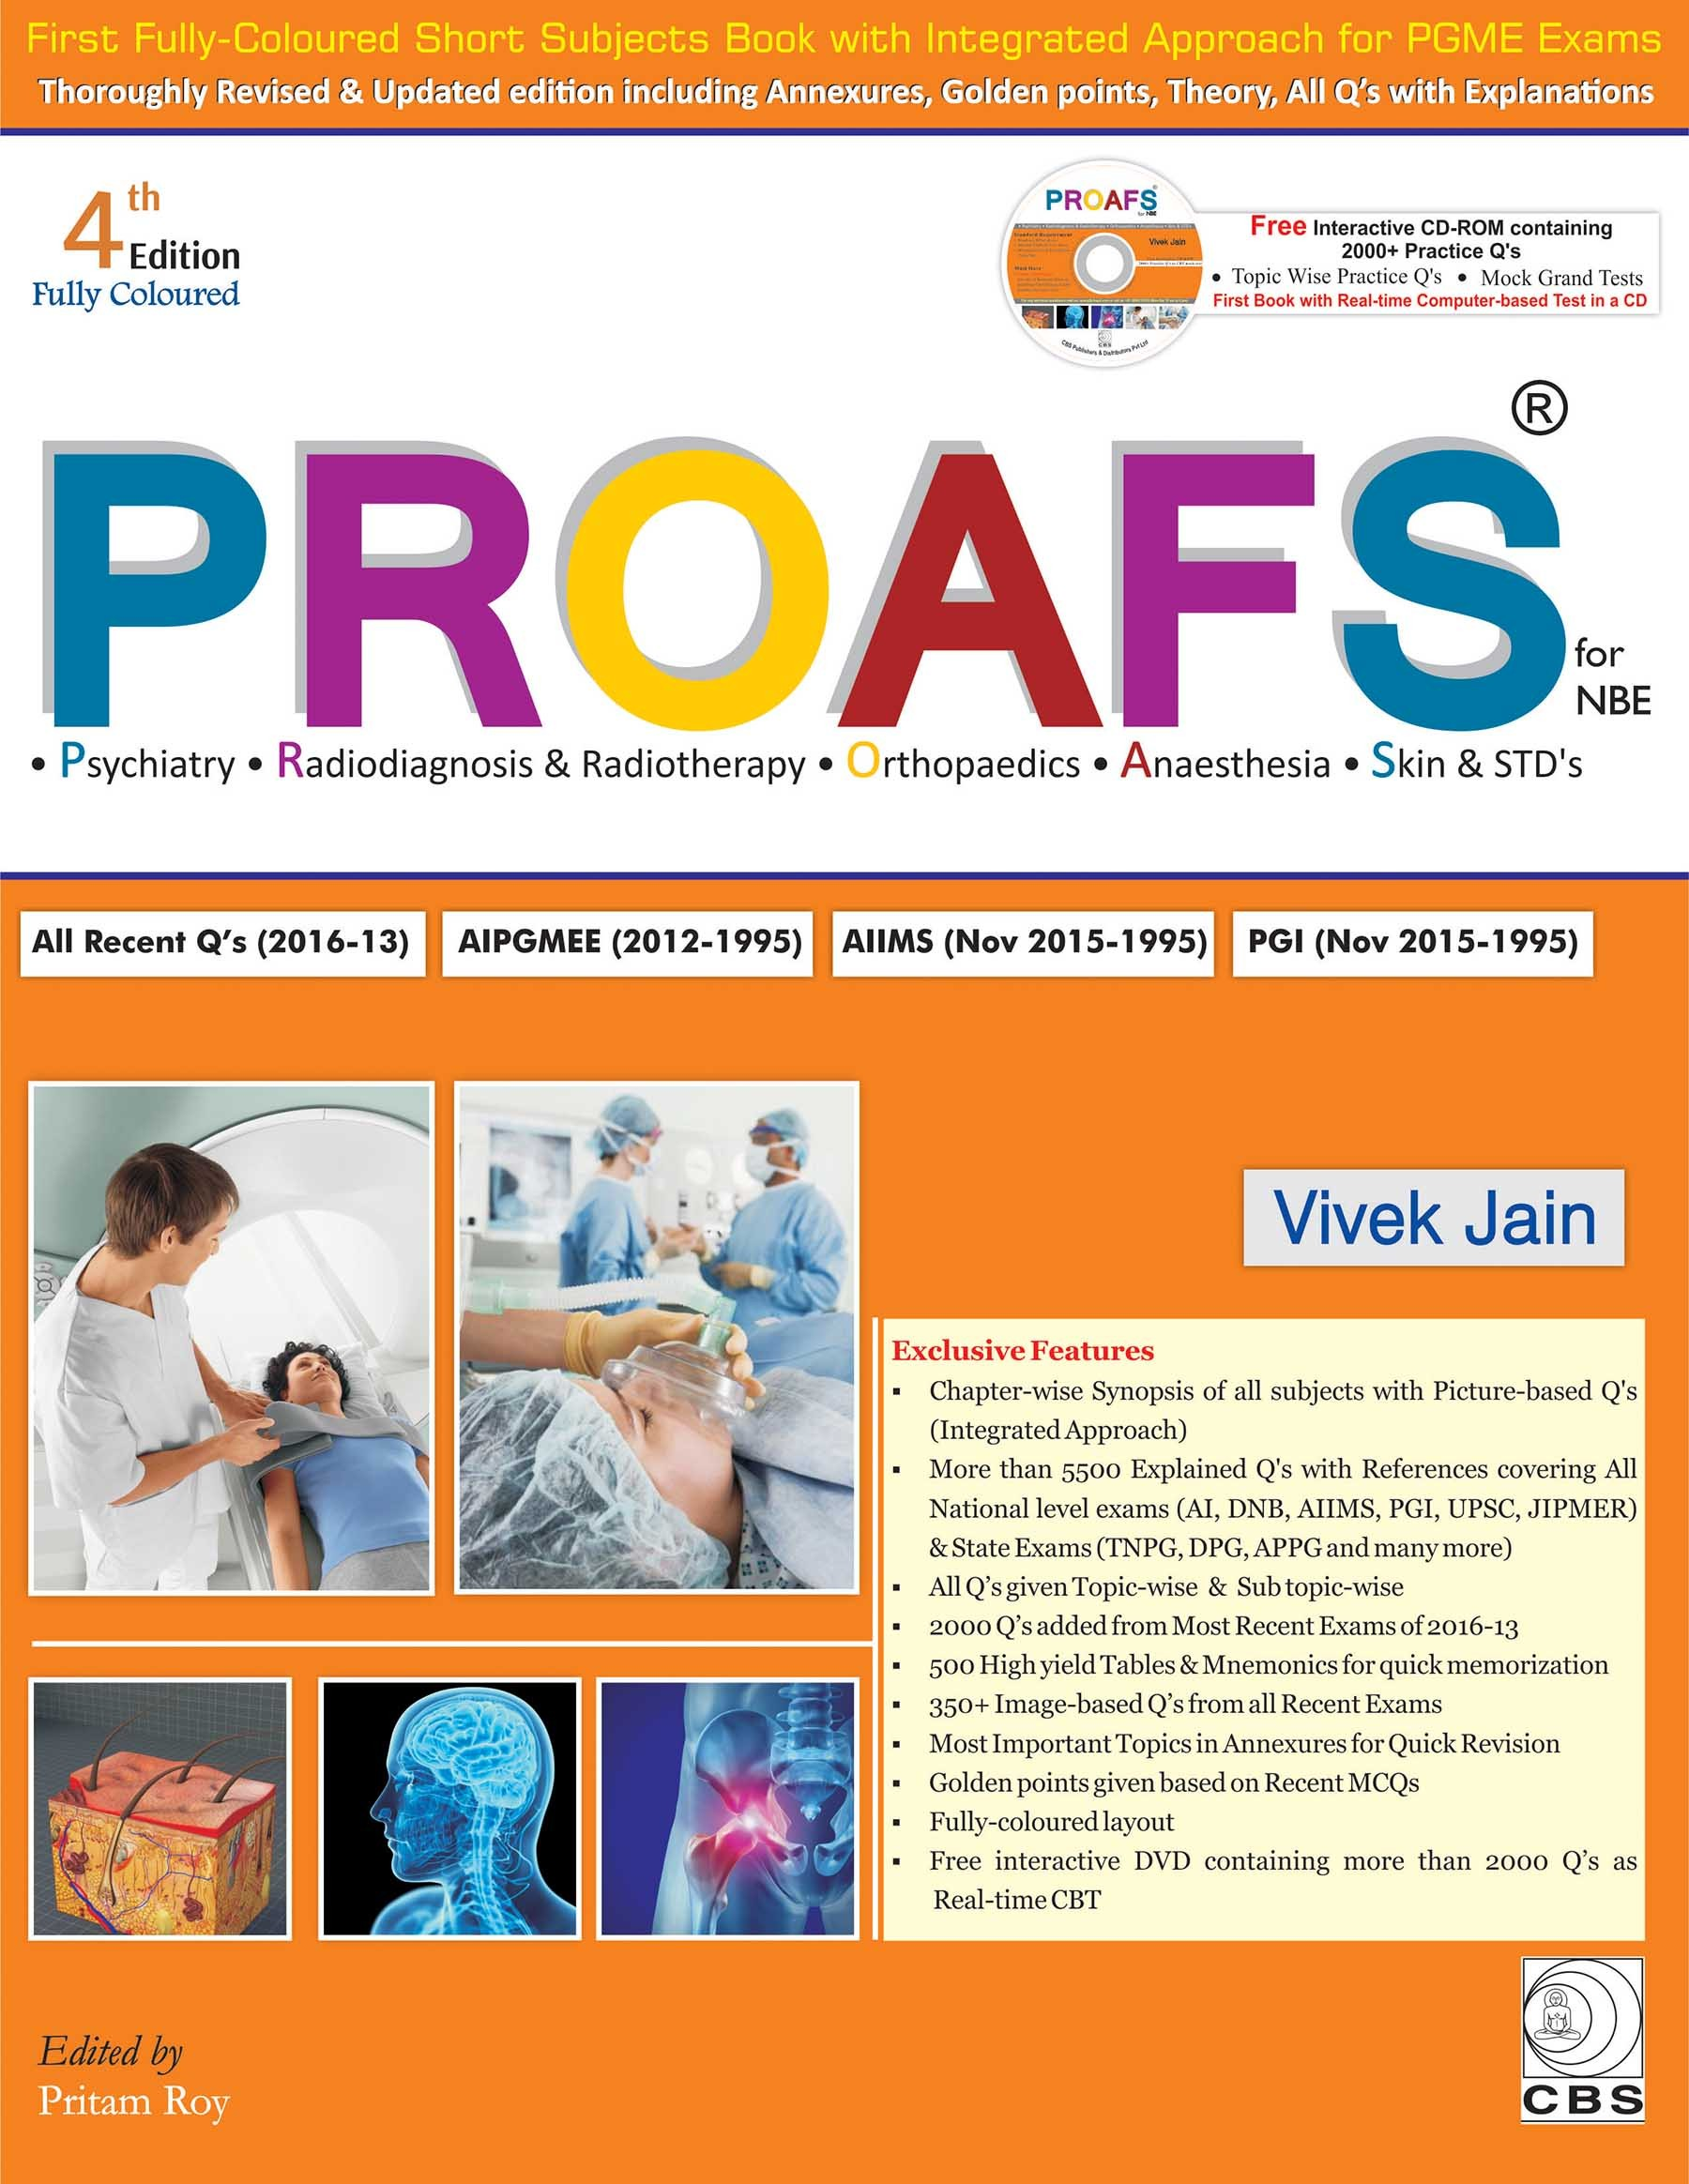 Proafs For Nbe(Psychiatry, Radiodiagnosis & Radiotherapy, Orthopaedics, Anaesthesia, Skin & Stds